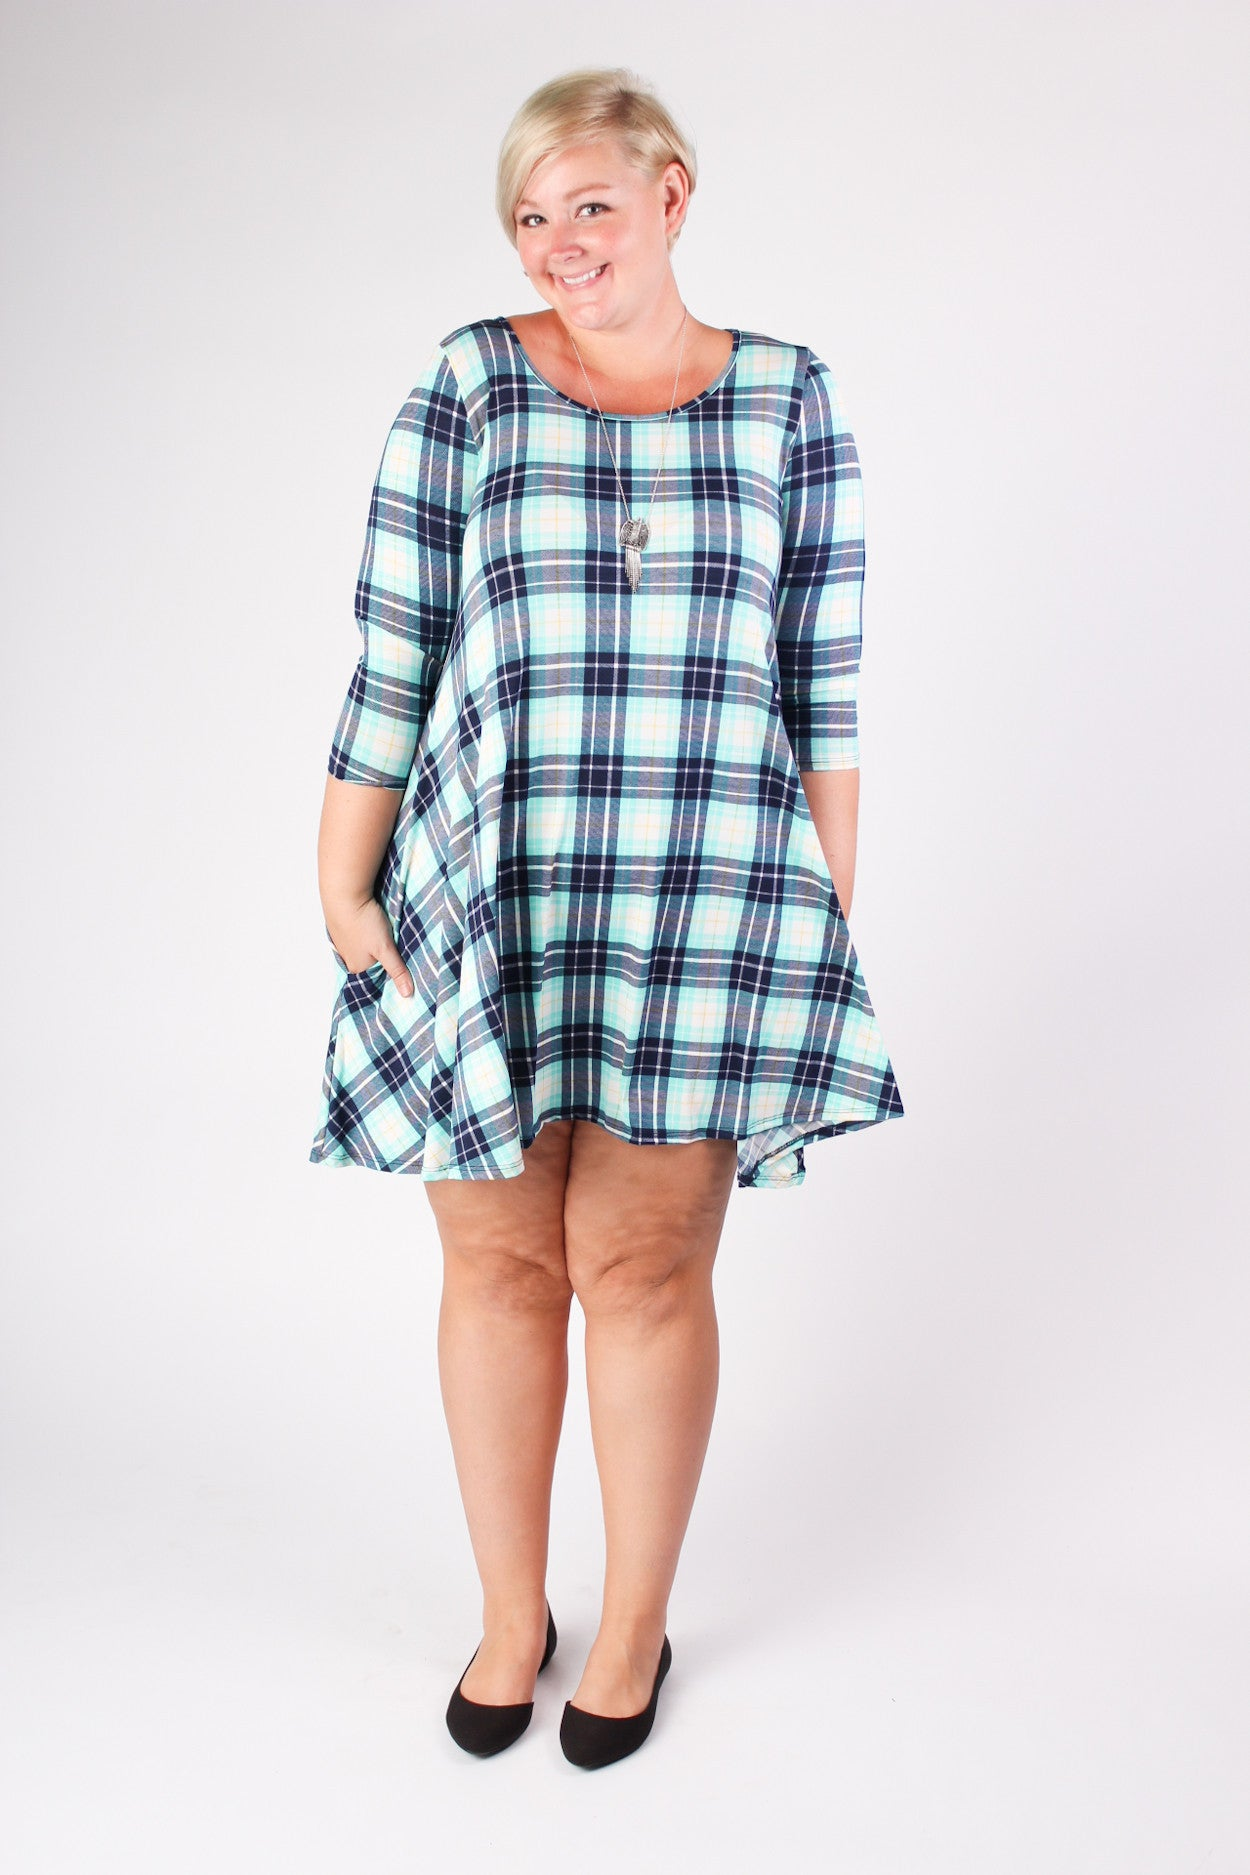 There's never a time when plaid isn't in style, but it seems especially perfect in the springtime, more specifically on a light dress. Wear it with sandals for a beachy feel, or make it a little more punk with leather boots and a jacket. 95% Rayon 5% Spandex Hand wash cold Made in USA Length Arm hole Sleeve length Size: 16/18 34